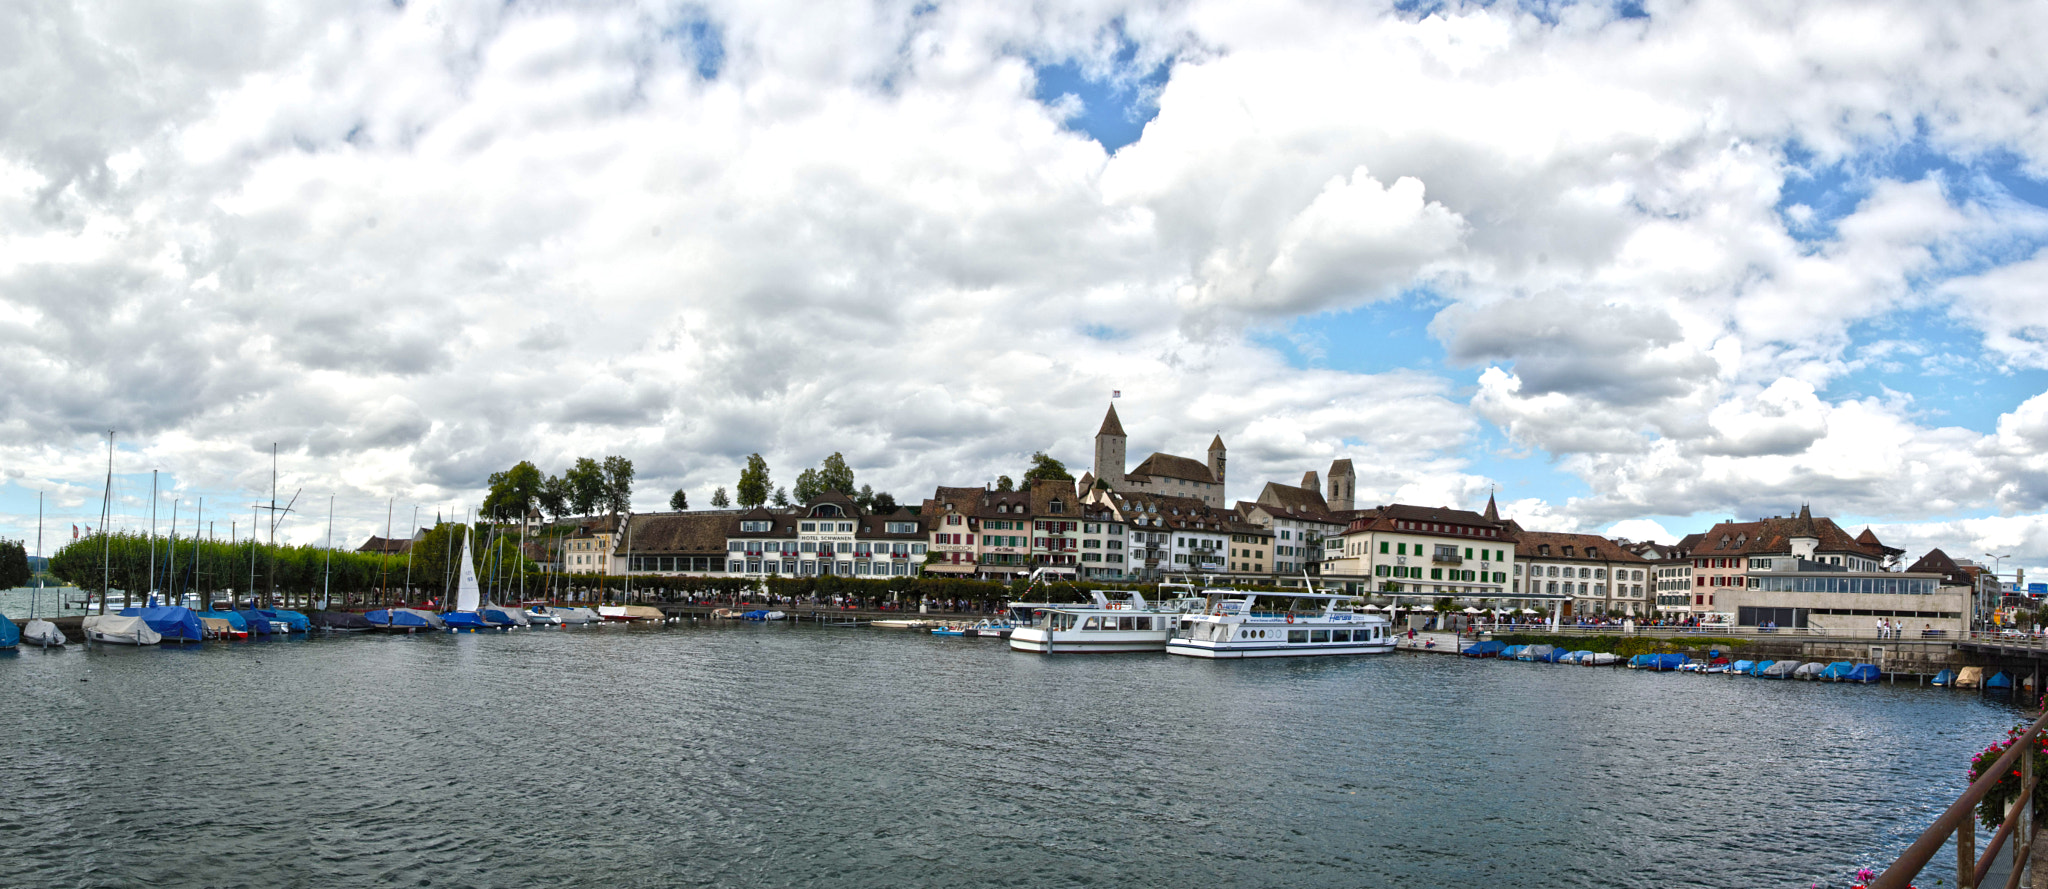 Photograph http://en.wikipedia.org/wiki/Rapperswil by Mircea Vasiu   ( hobby photographer ) on 500px